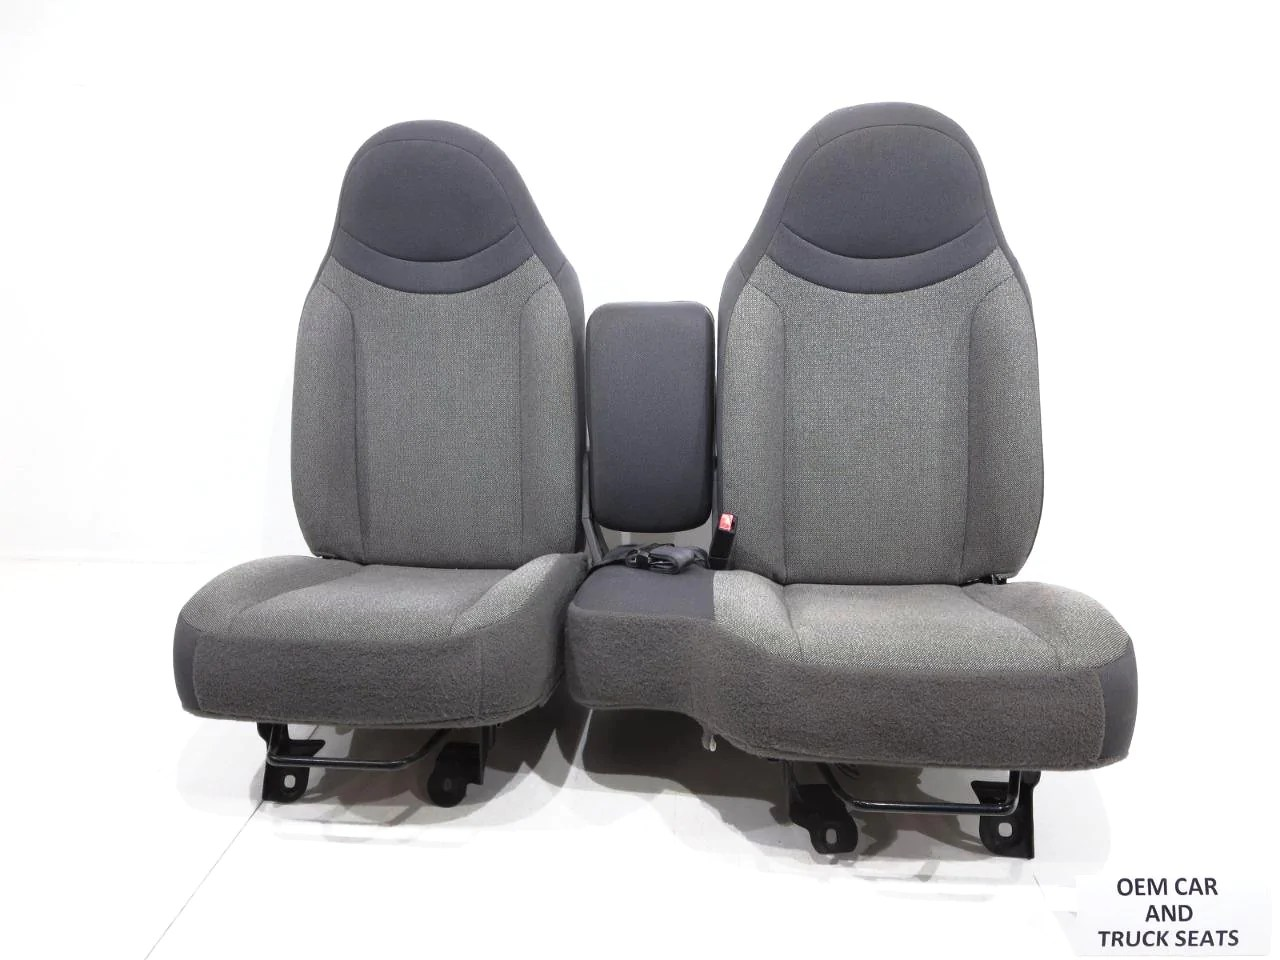 hight resolution of ford ranger fx4 regular cab 60 40 oem front seats 1998 2006 2007 2008